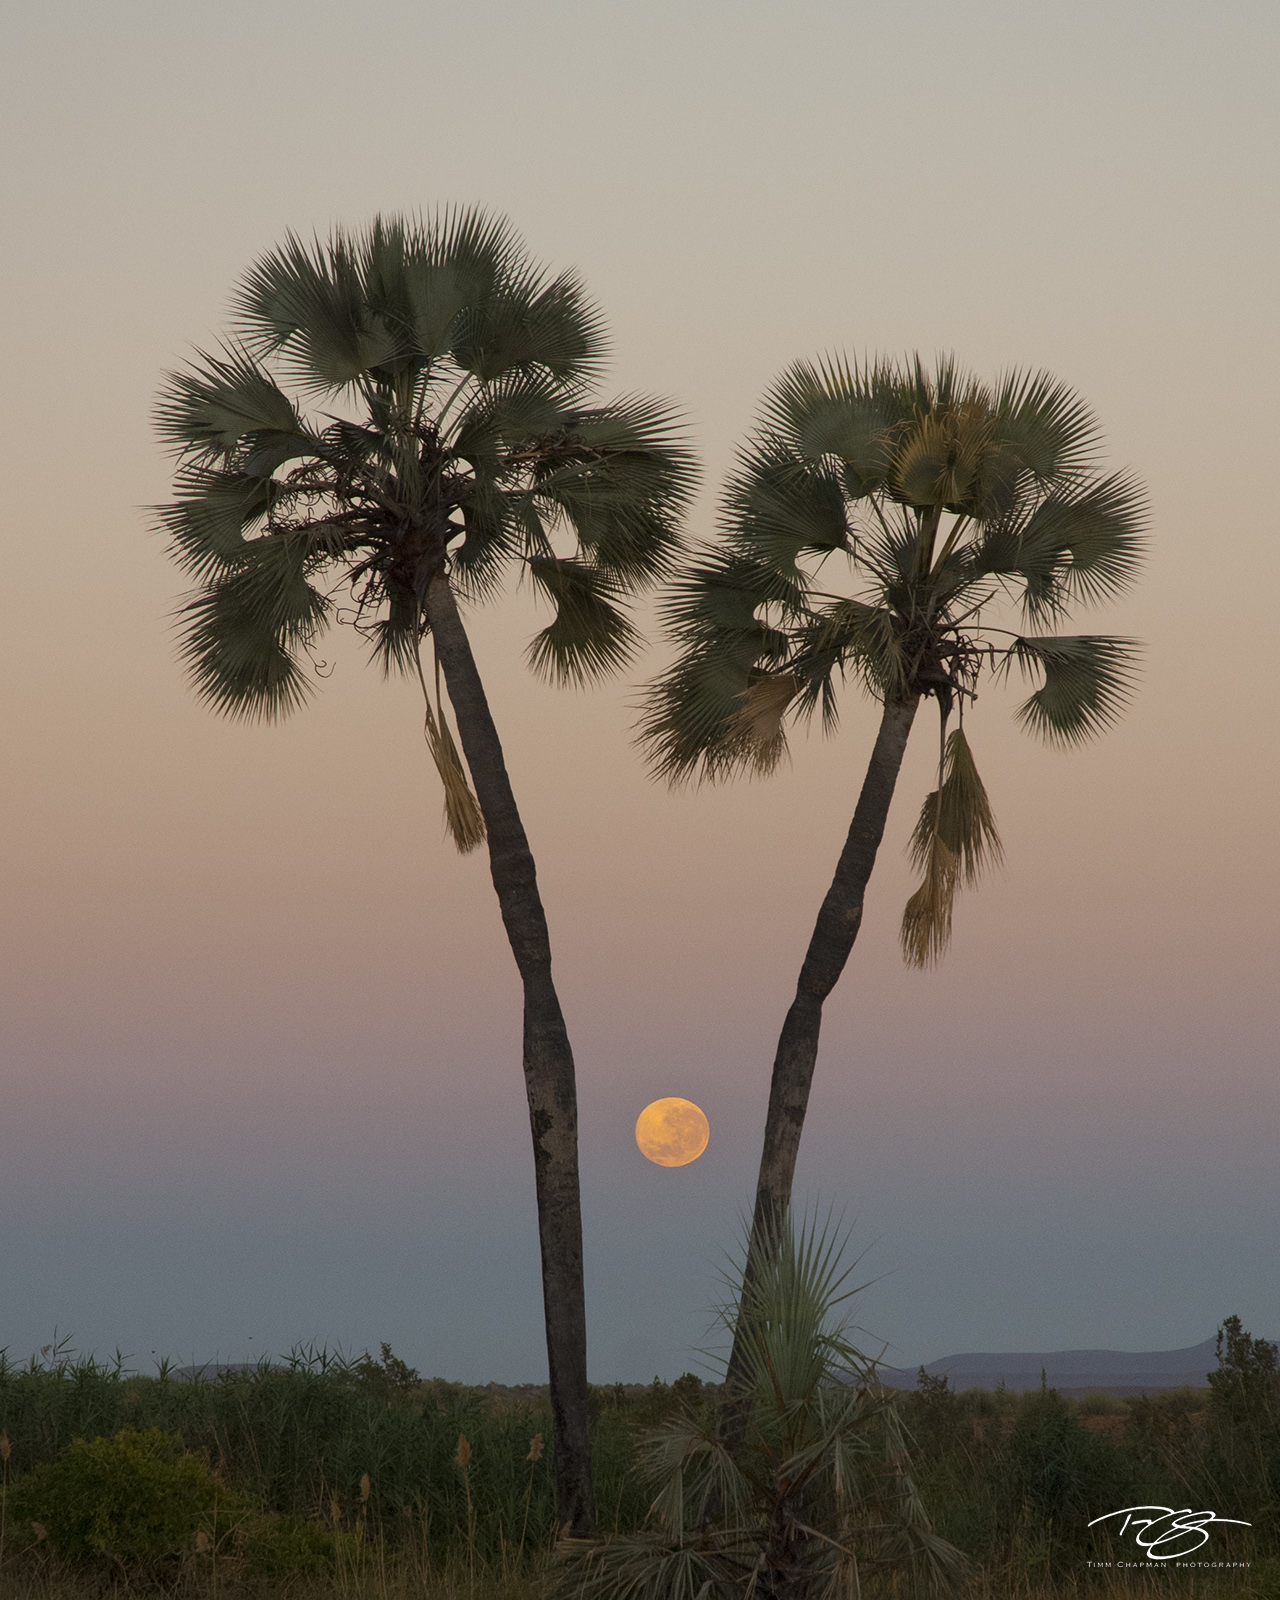 namibia, palmwag, palm trees, silhouette, sunset, twilight, predawn, namib desert, southwest africa, full moon, moon, pastel, photo